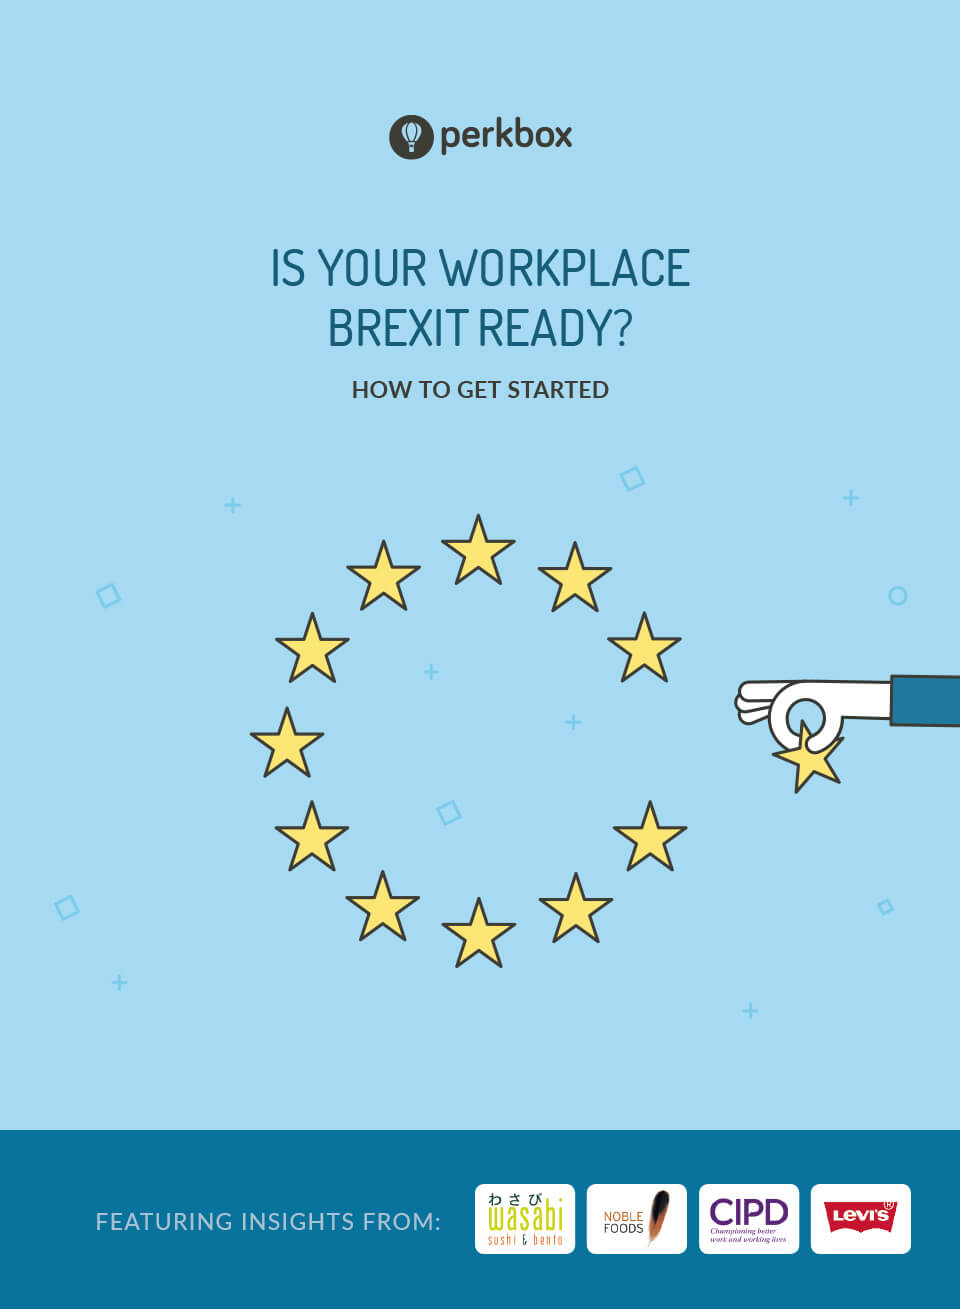 Is Your Workplace Brexit Ready?